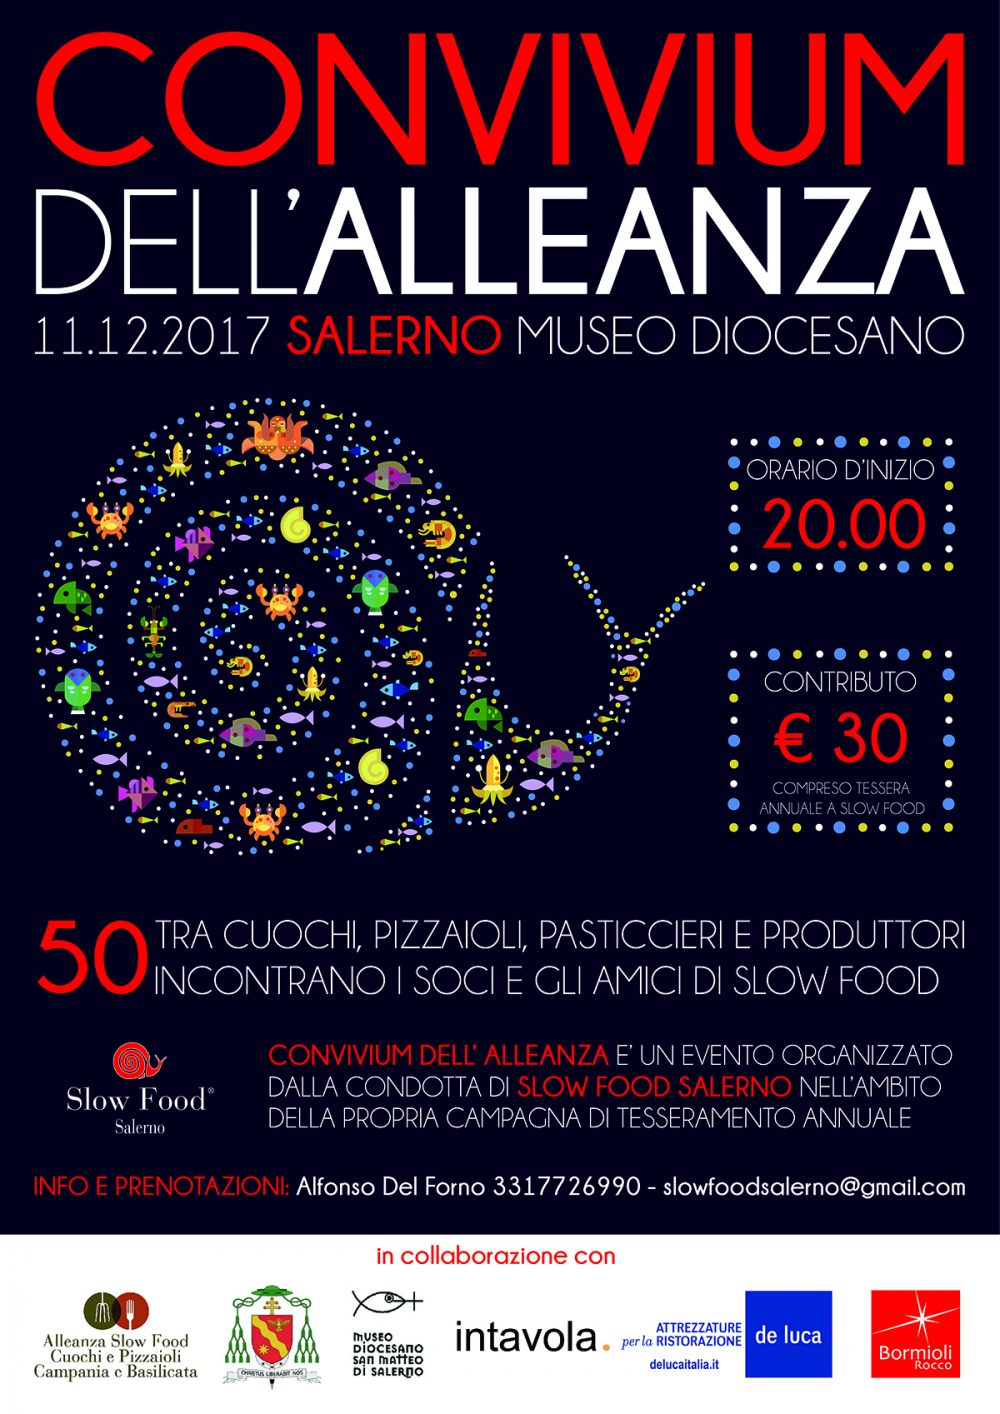 Convivium dell'Alleanza, la Festa di Slow Food Salerno